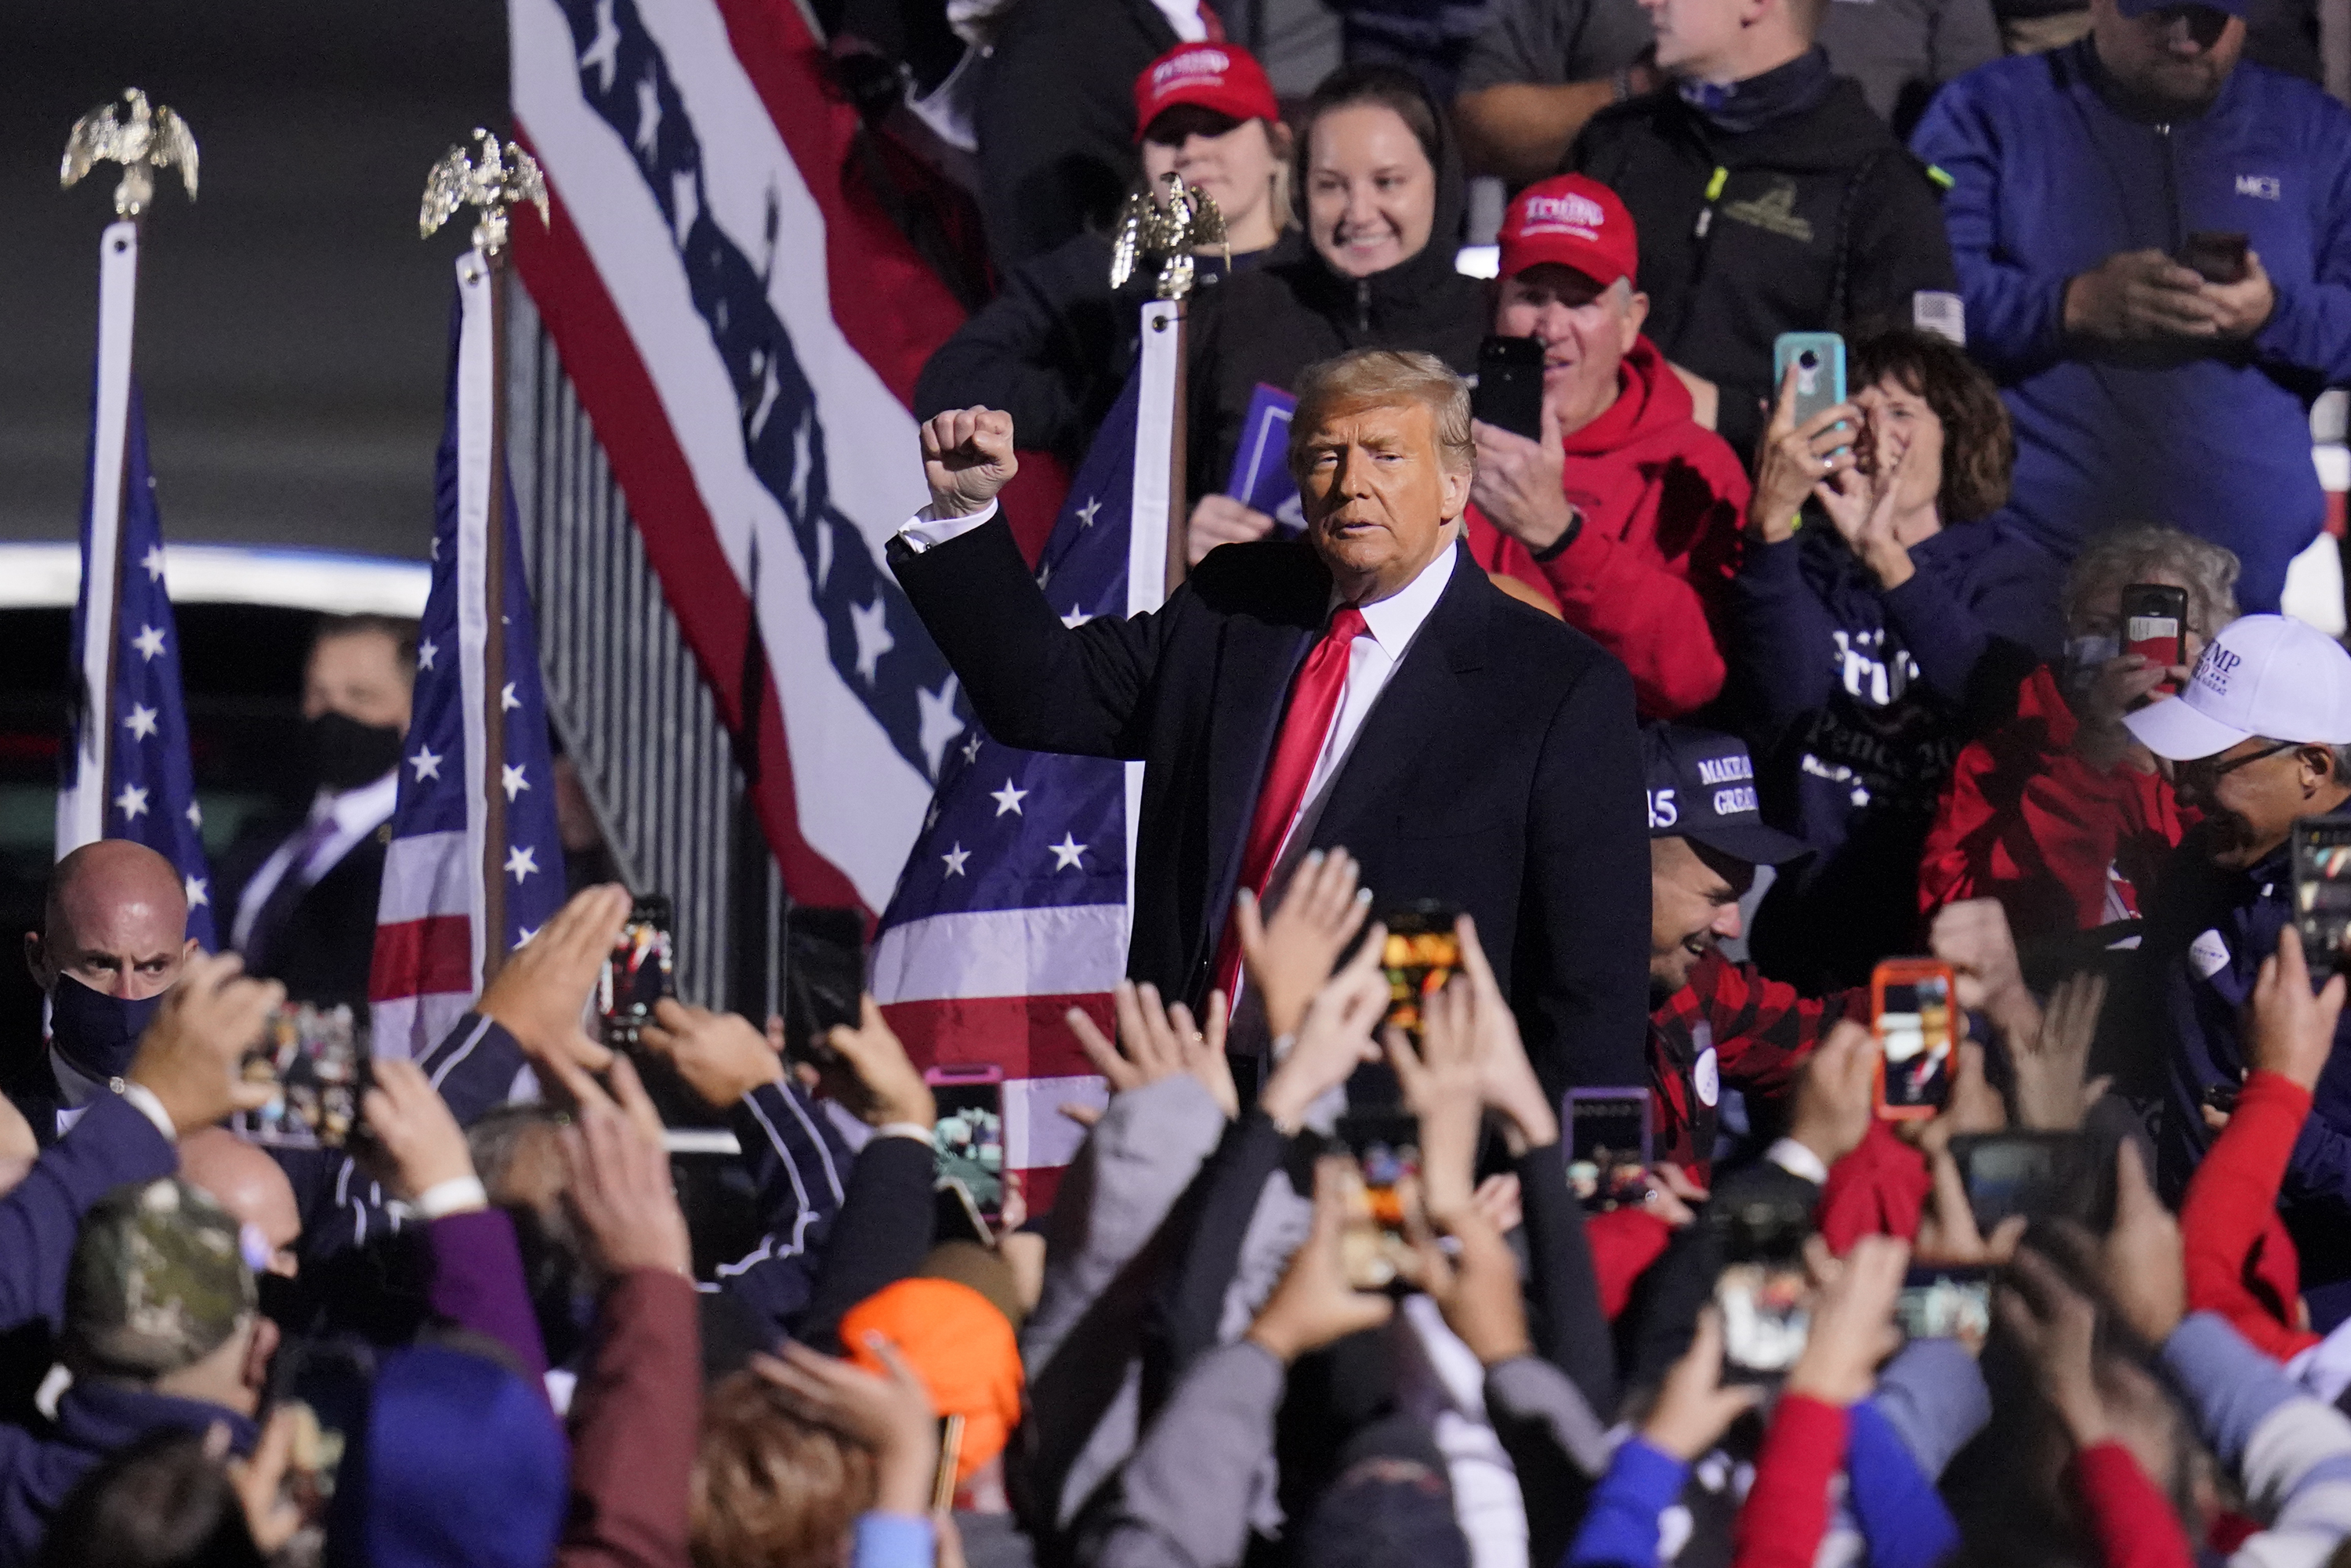 Supporters cheer as President Donald Trump departs a campaign rally at John P. Murtha Johnstown-Cambria County Airport in Johnstown, Pa., Tuesday, Oct. 13, 2020. (AP Photo/Gene J. Puskar)